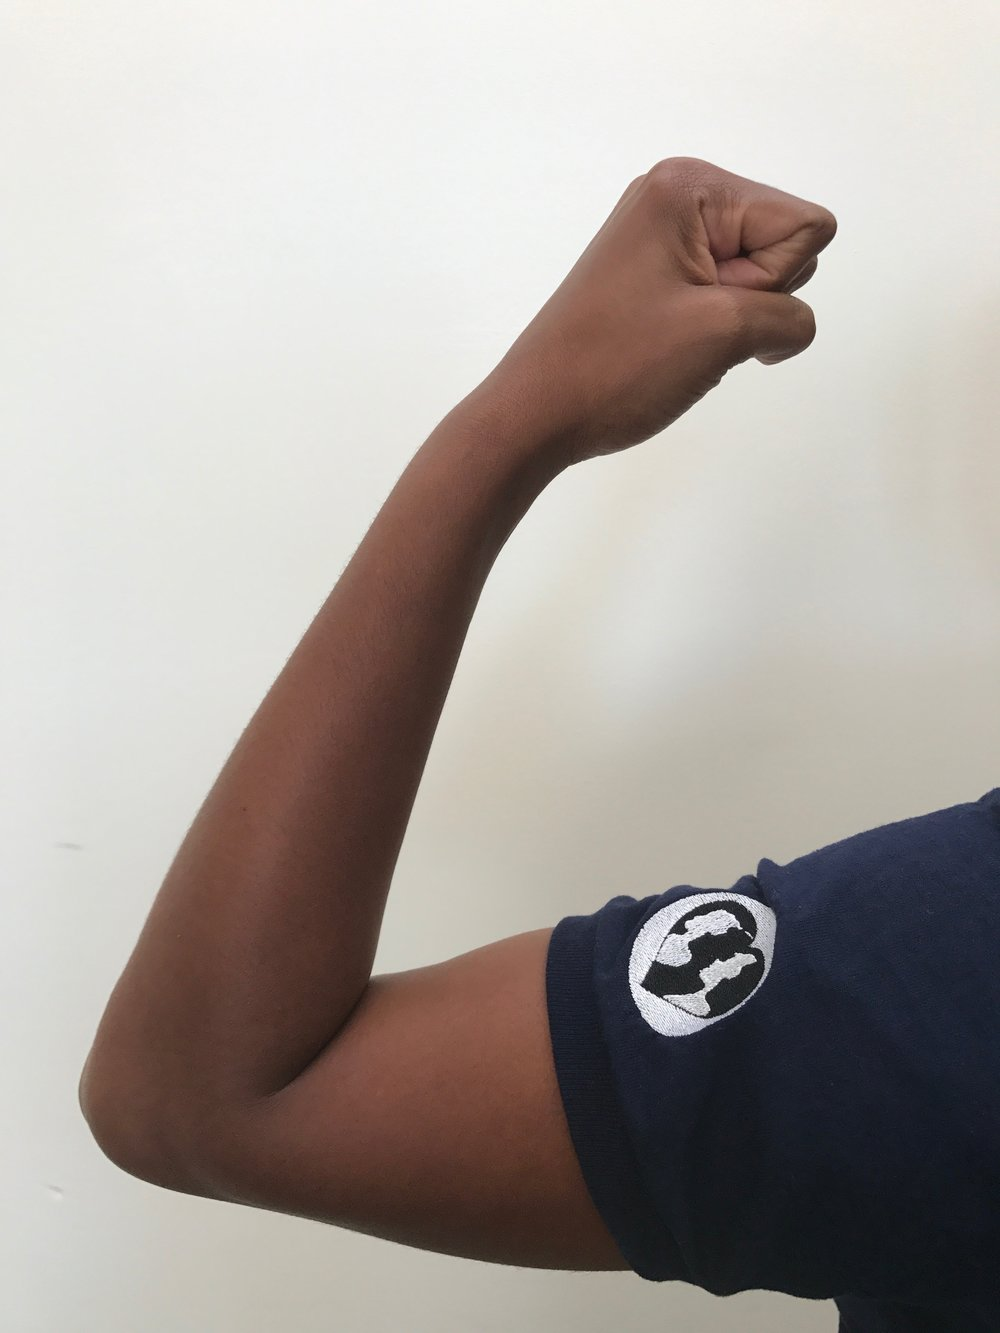 Tashara fist with logo.JPG